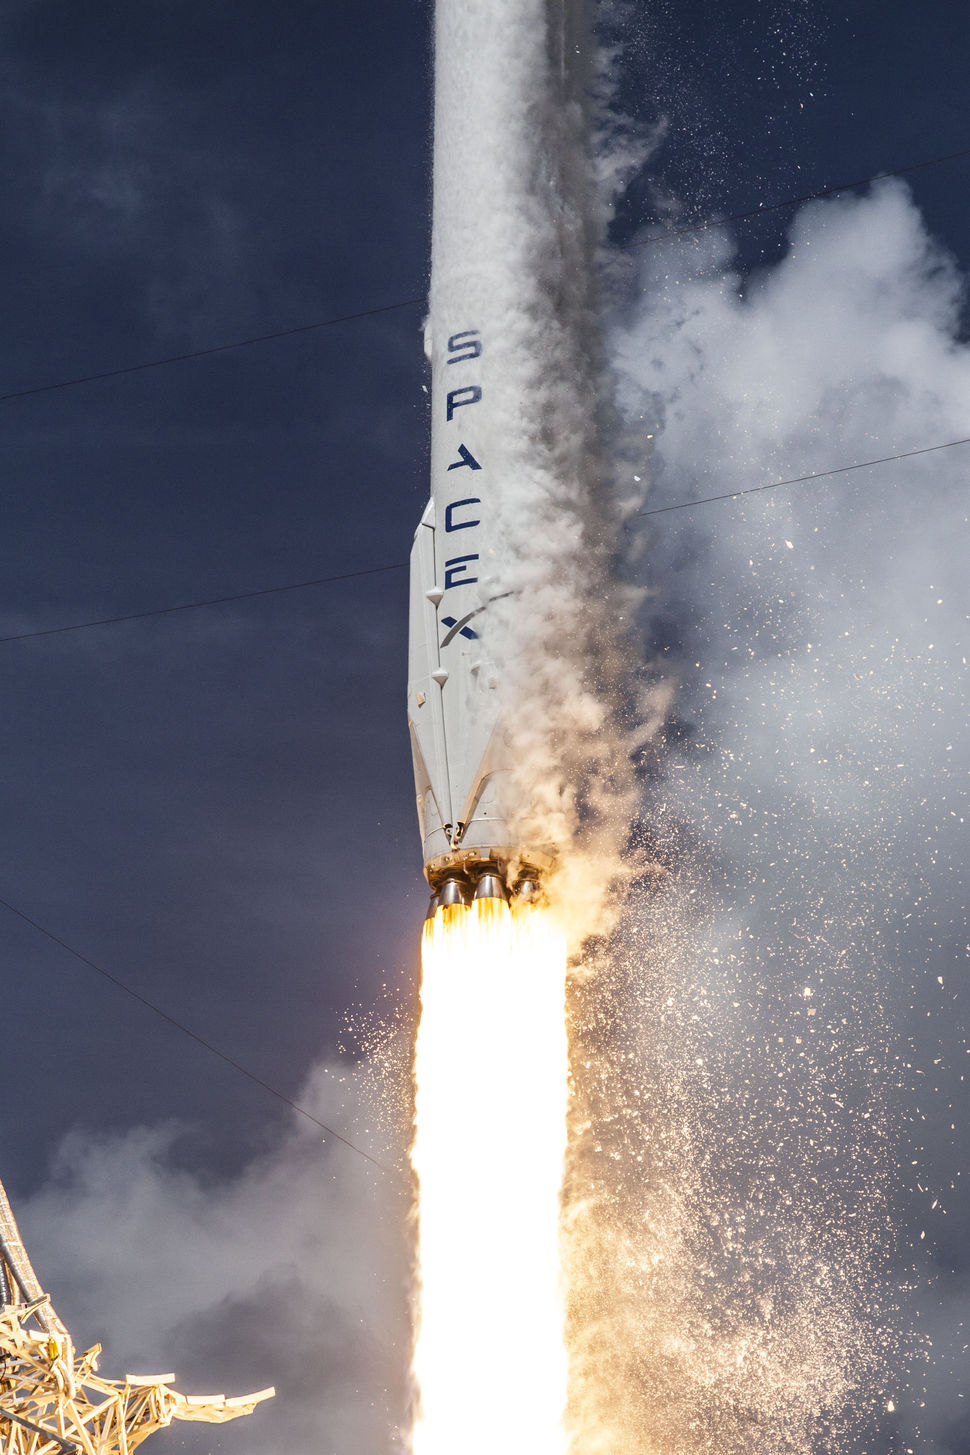 Nine Merlin 1D engines power the first stage of the Falcon 9 rocket, as seen in this file photo from a July 2014 launch. Credit: SpaceX